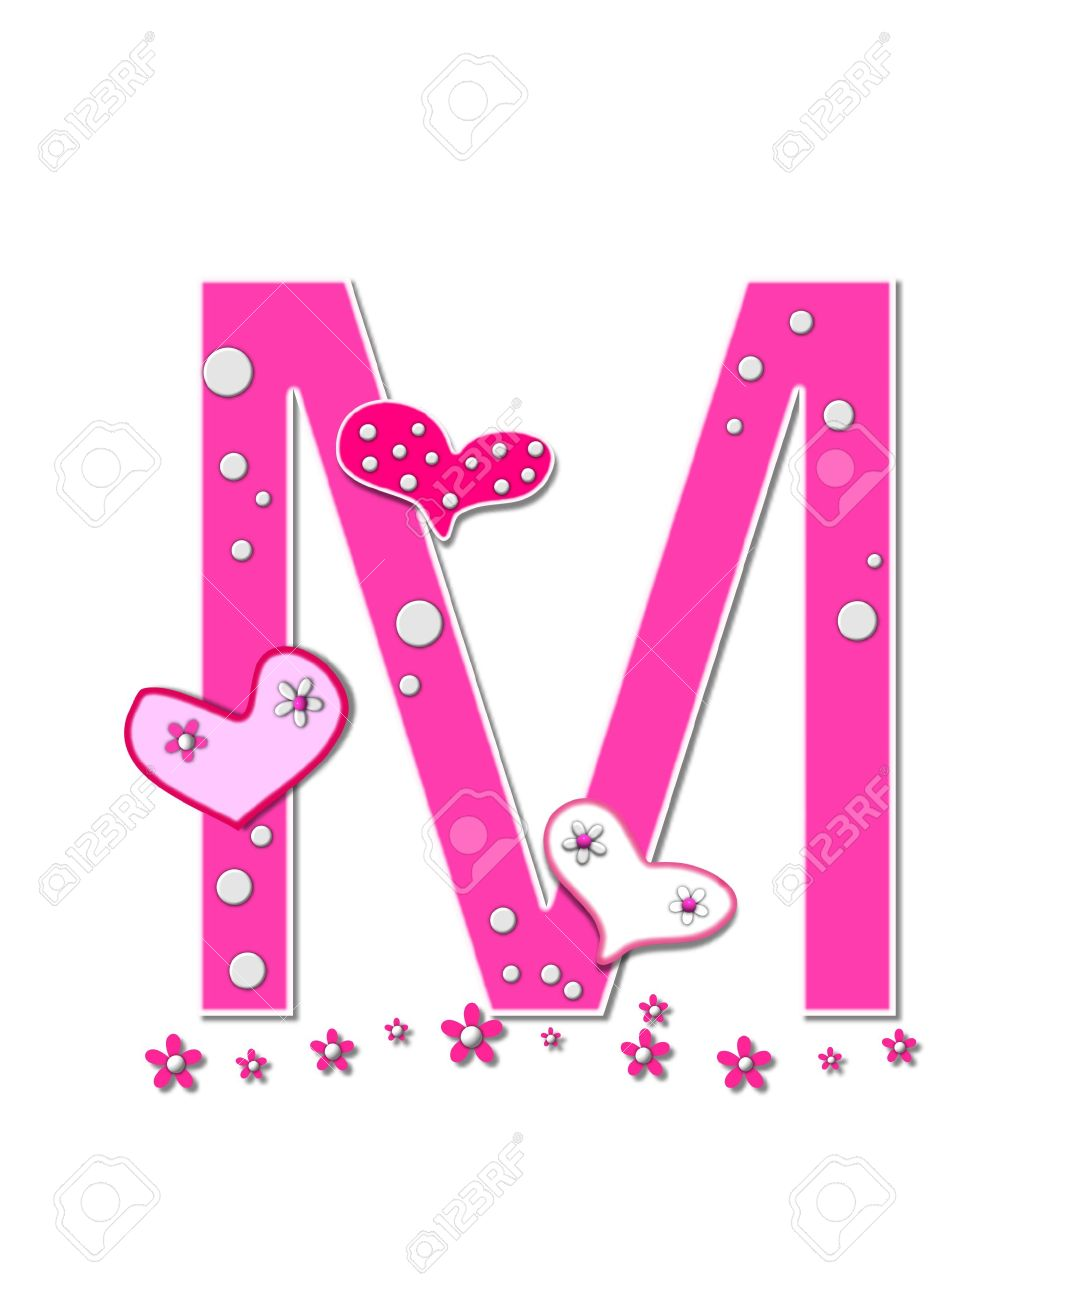 Delightful Stock Photo   The Letter M, In The Alphabet Set Heartfull, Is Pink Outlined  With White Polka Dots And Hearts Decorate Letter With A Line Of Pink  Flowers At ...